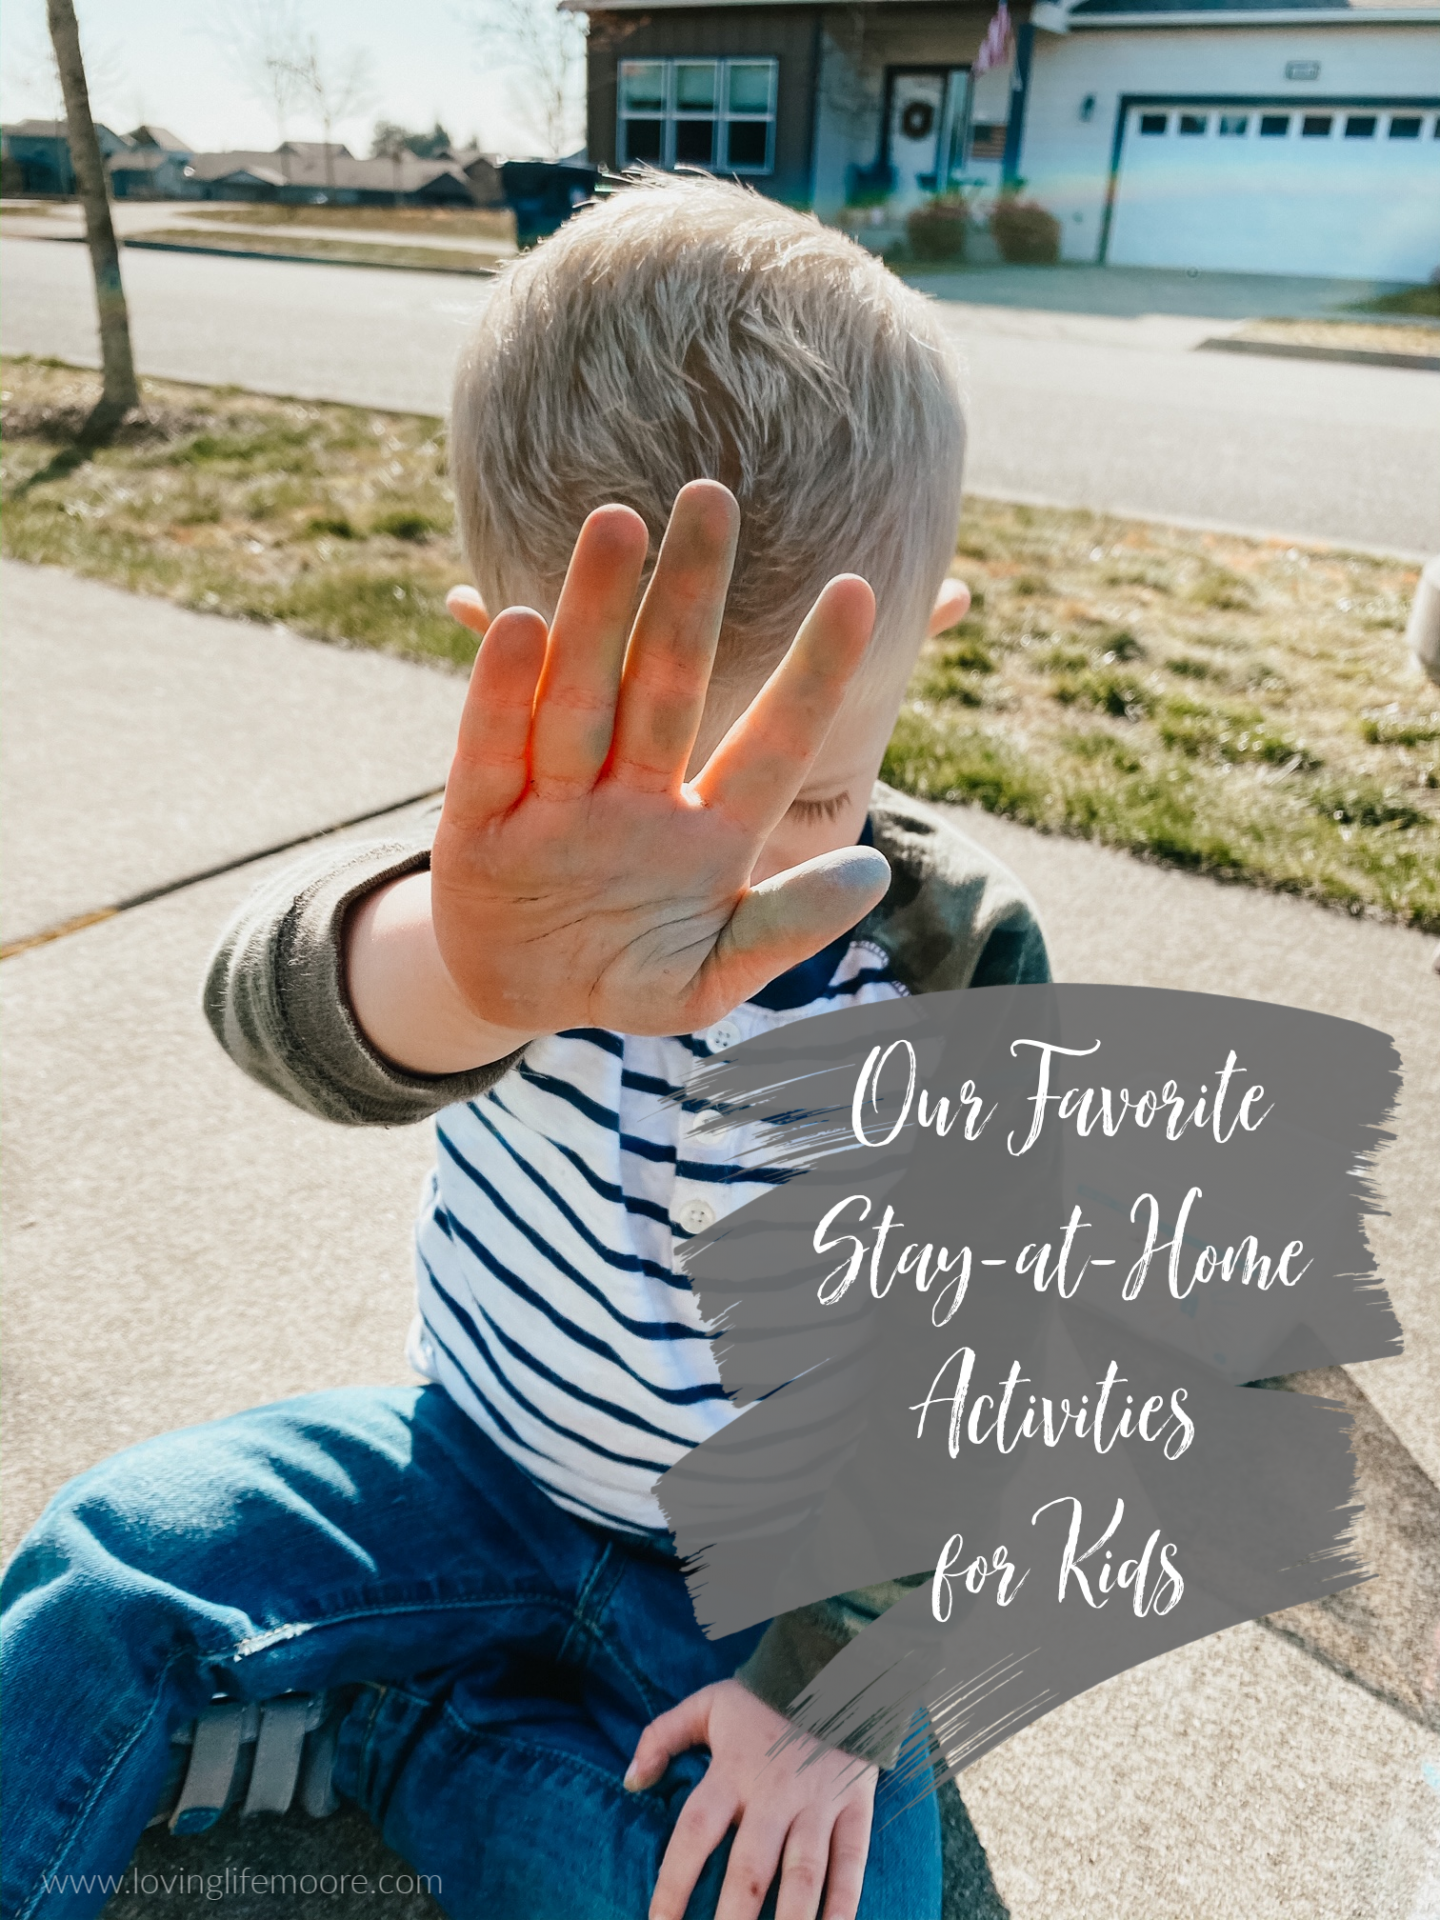 our favorite stay-at-home activities for kids